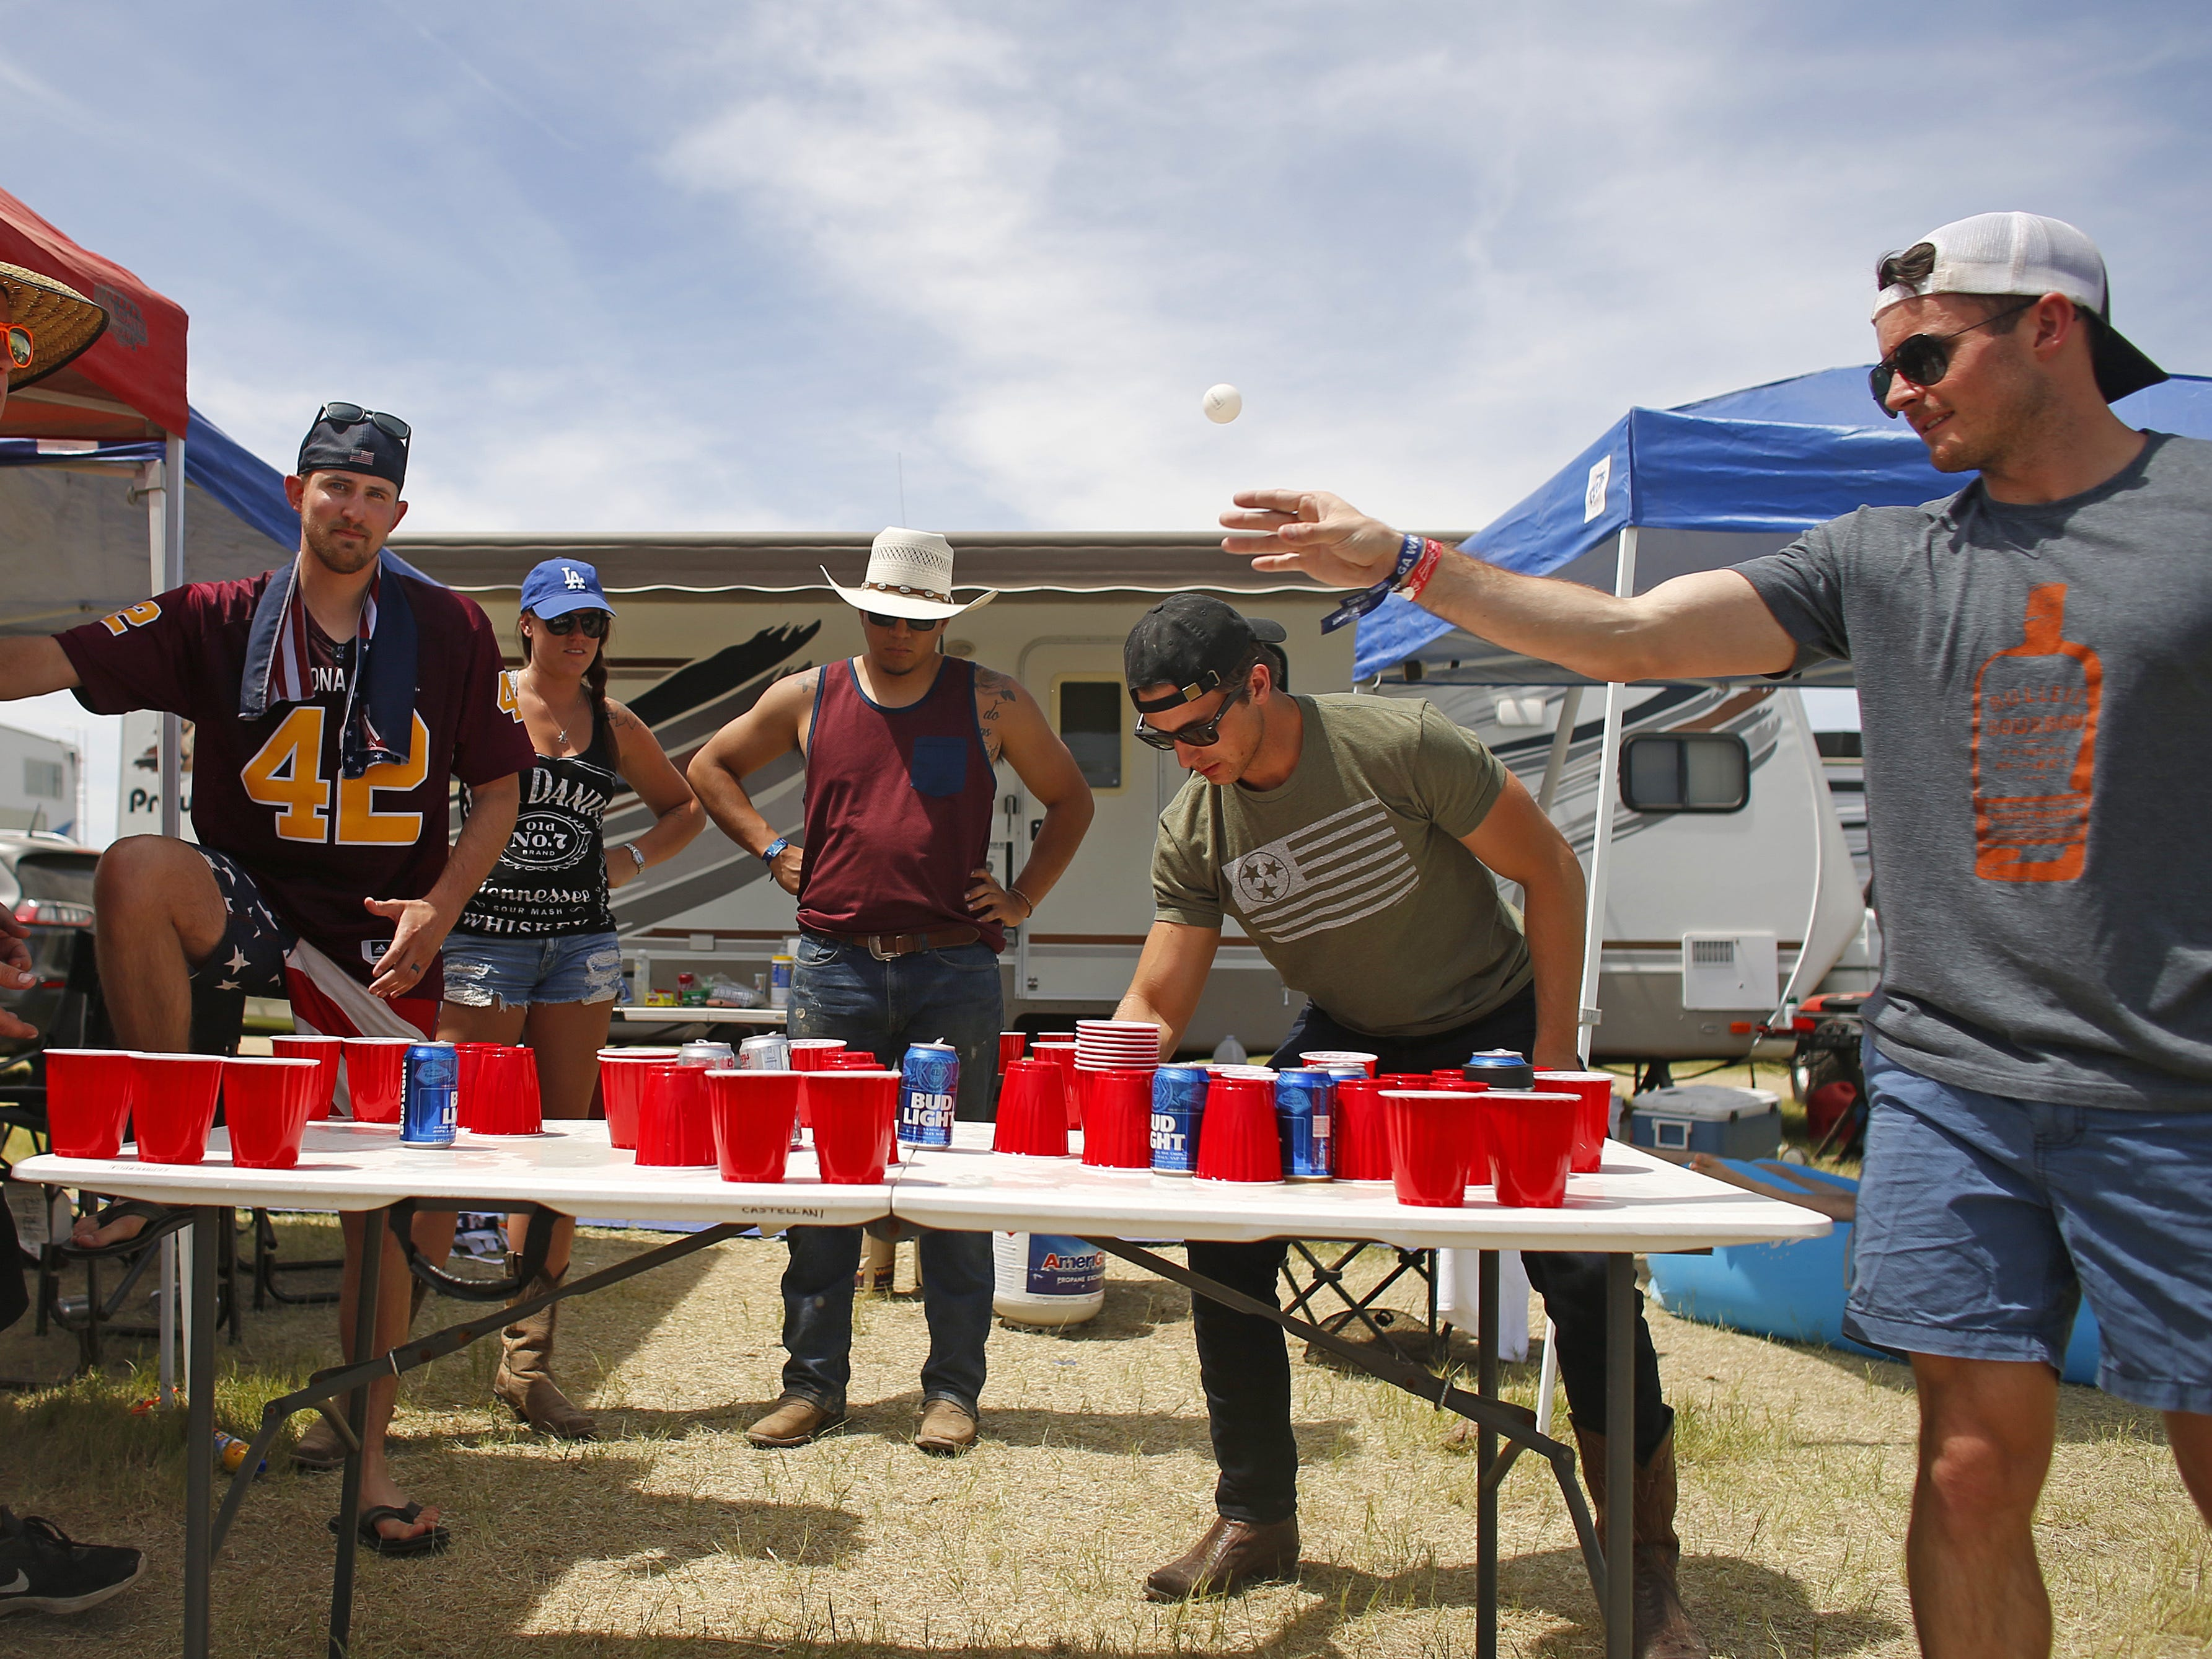 Clayton Boer (right) throws toward his teammate Ryan O'Halloran (left) while they play a drinking game called Dirt Cup during Country Thunder in Florence, Ariz. on Sunday, April 14, 2019.